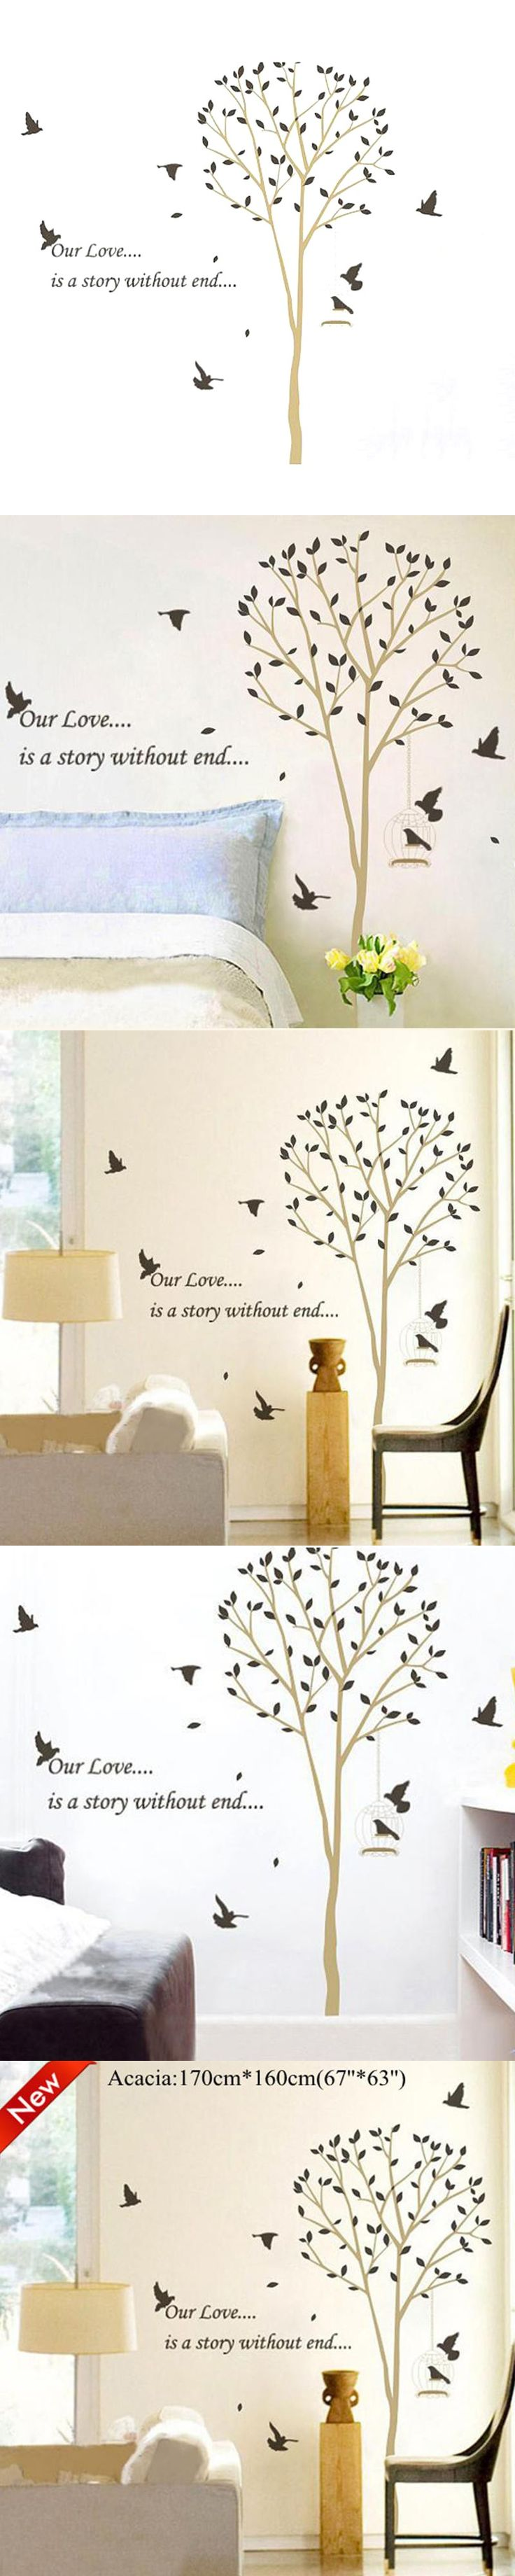 best 20 brown wall stickers ideas on pinterest door stickers xl170 160cm our love is a story without end brown tree wall stickers for livingroom bedroom wall decal mural home decor zy9055